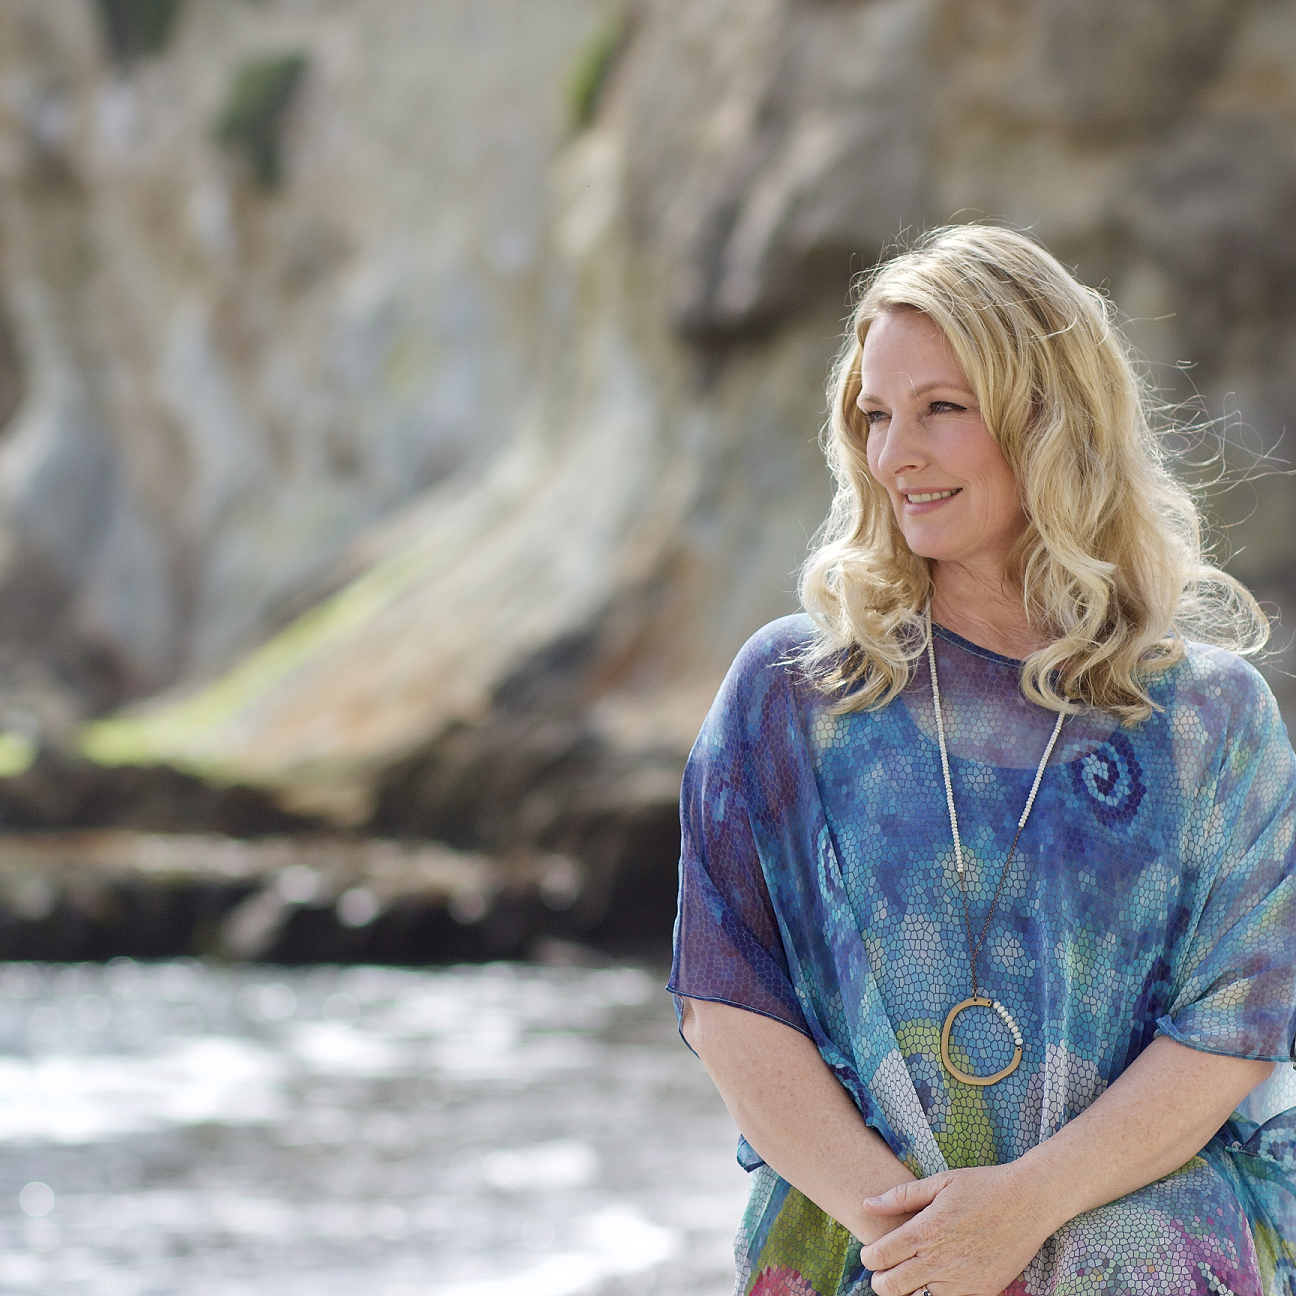 Photograph of Dr. Tammy Dobbs licensed clinical psychologist at the beach in California